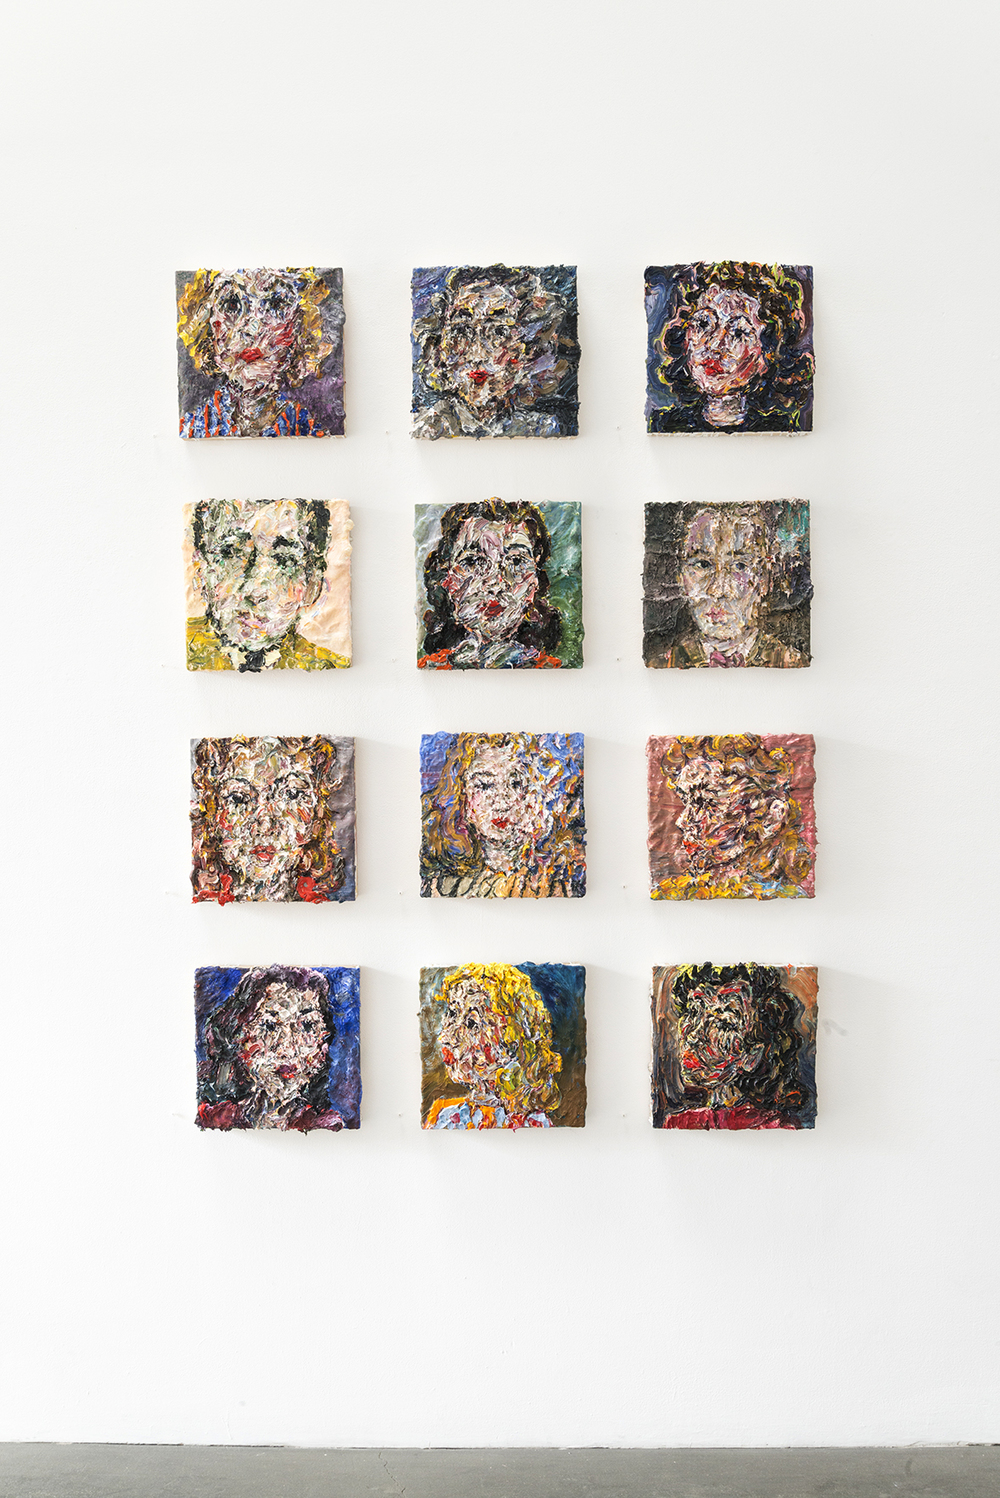 Dreamers installed at Richard Heller Gallery, 2015